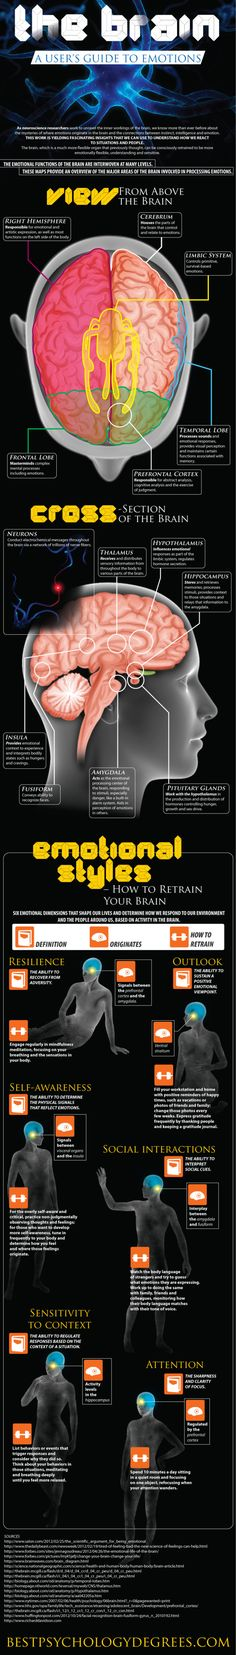 The Brain - A User's Guide to Emotions via Medical Infographics